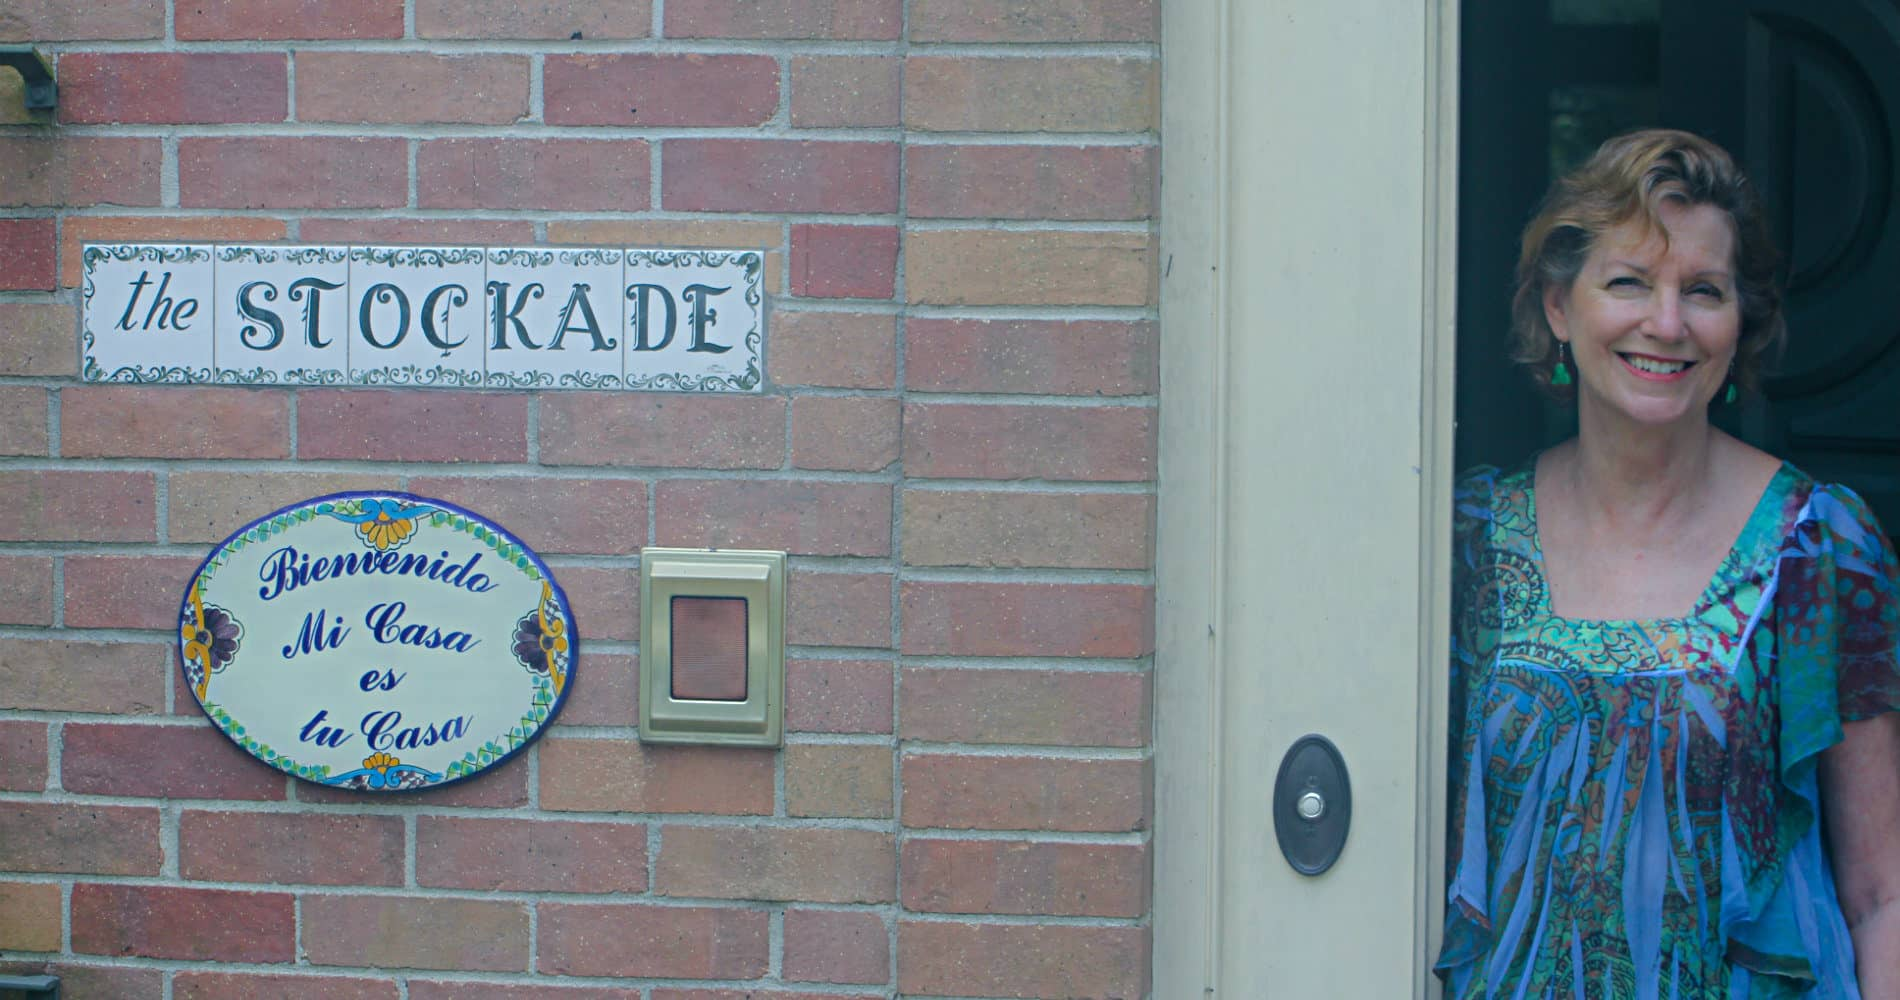 The Stockade Bed and Breakfast: Innkeepers Notes